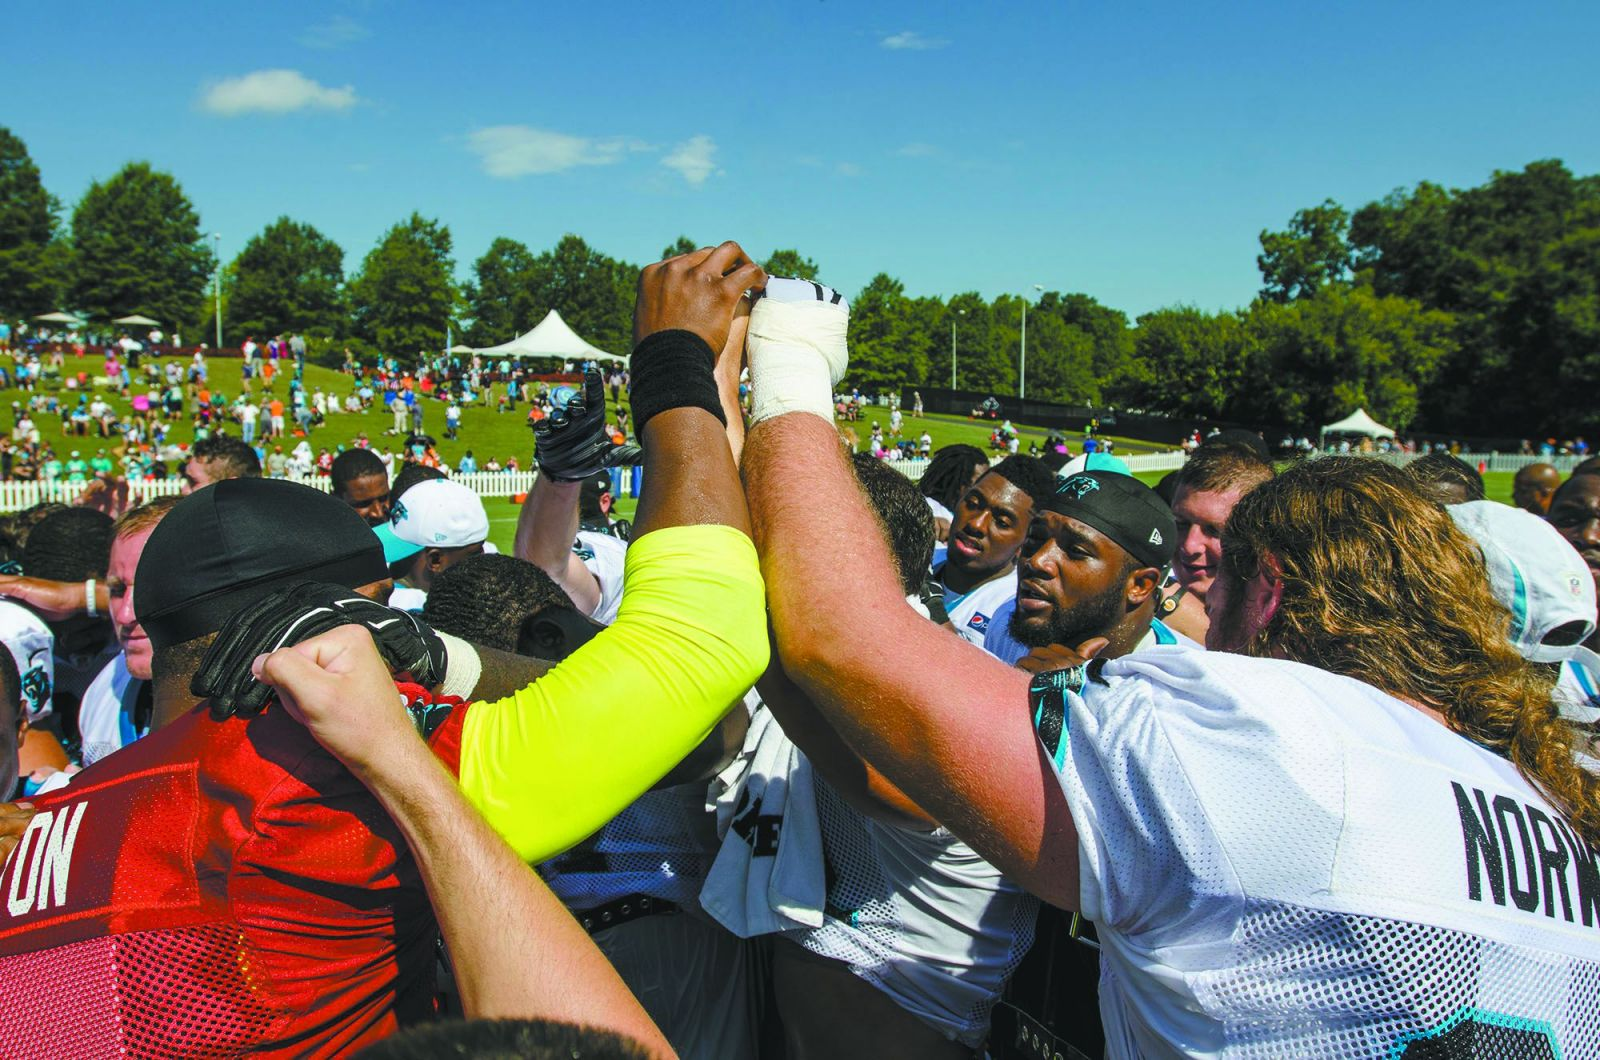 More than 135,000 fans came to Spartanburg in 2016 to see the Carolina Panthers at their training camp at Wofford College. (Photo/Provided)